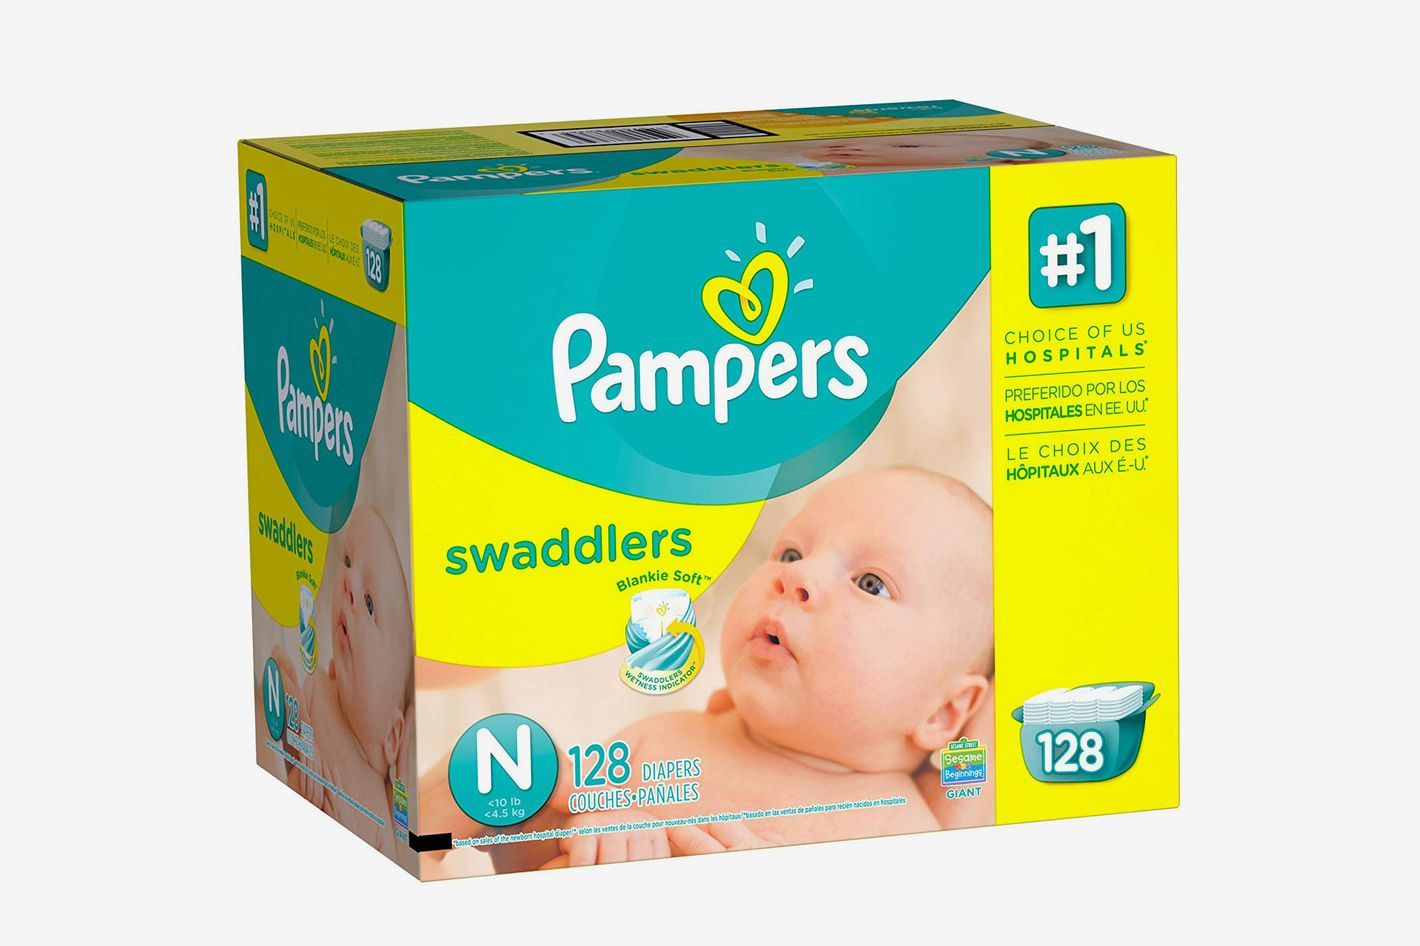 Pampers Swaddlers Disposable Diapers Newborn Size